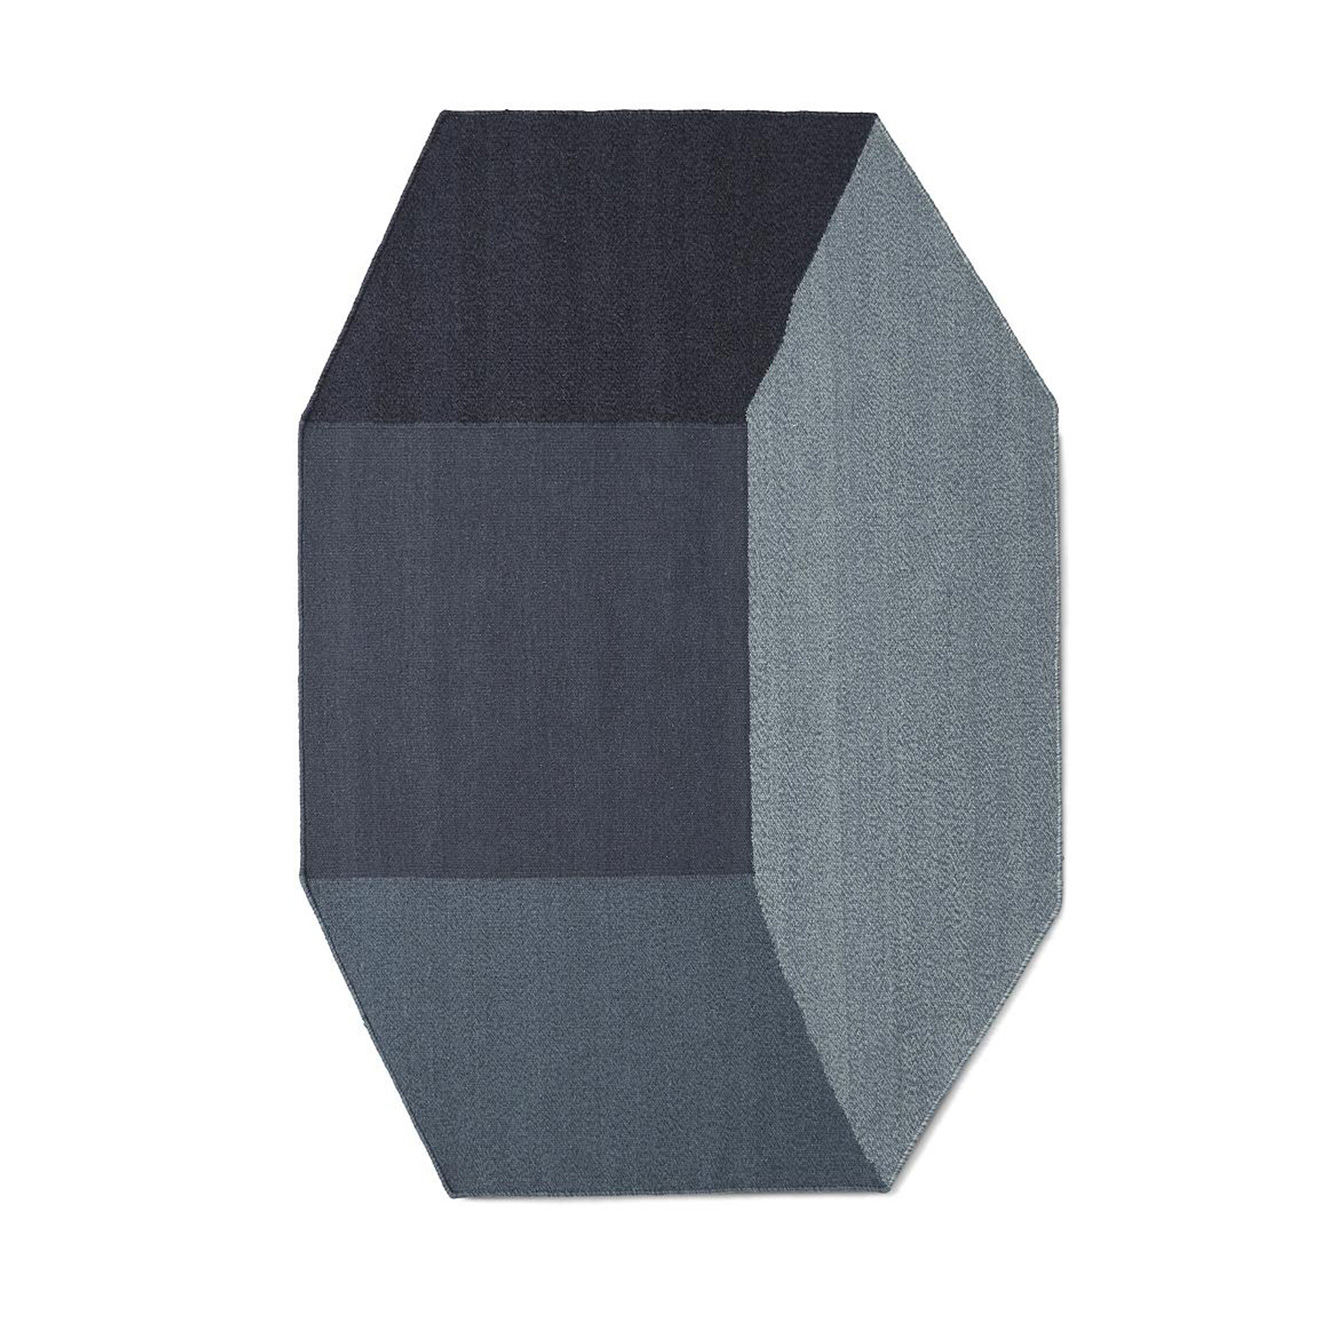 Volume Rug by Menu